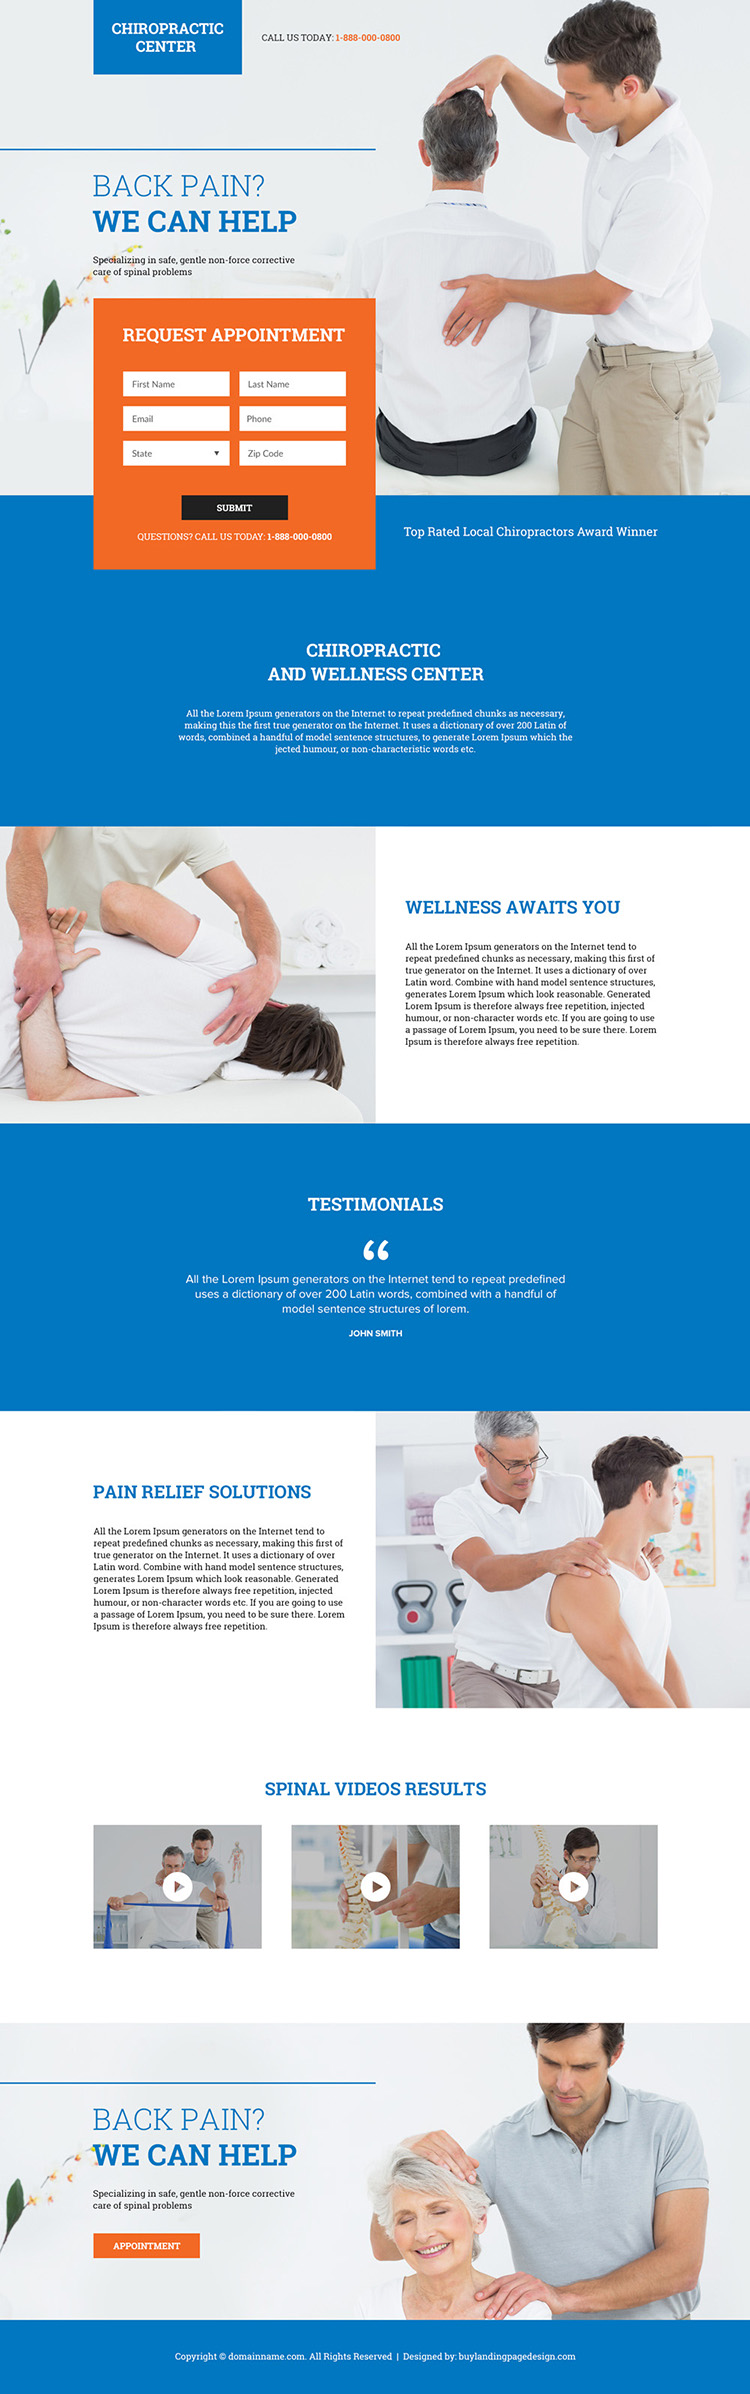 local chiropractors appointment booking responsive landing page